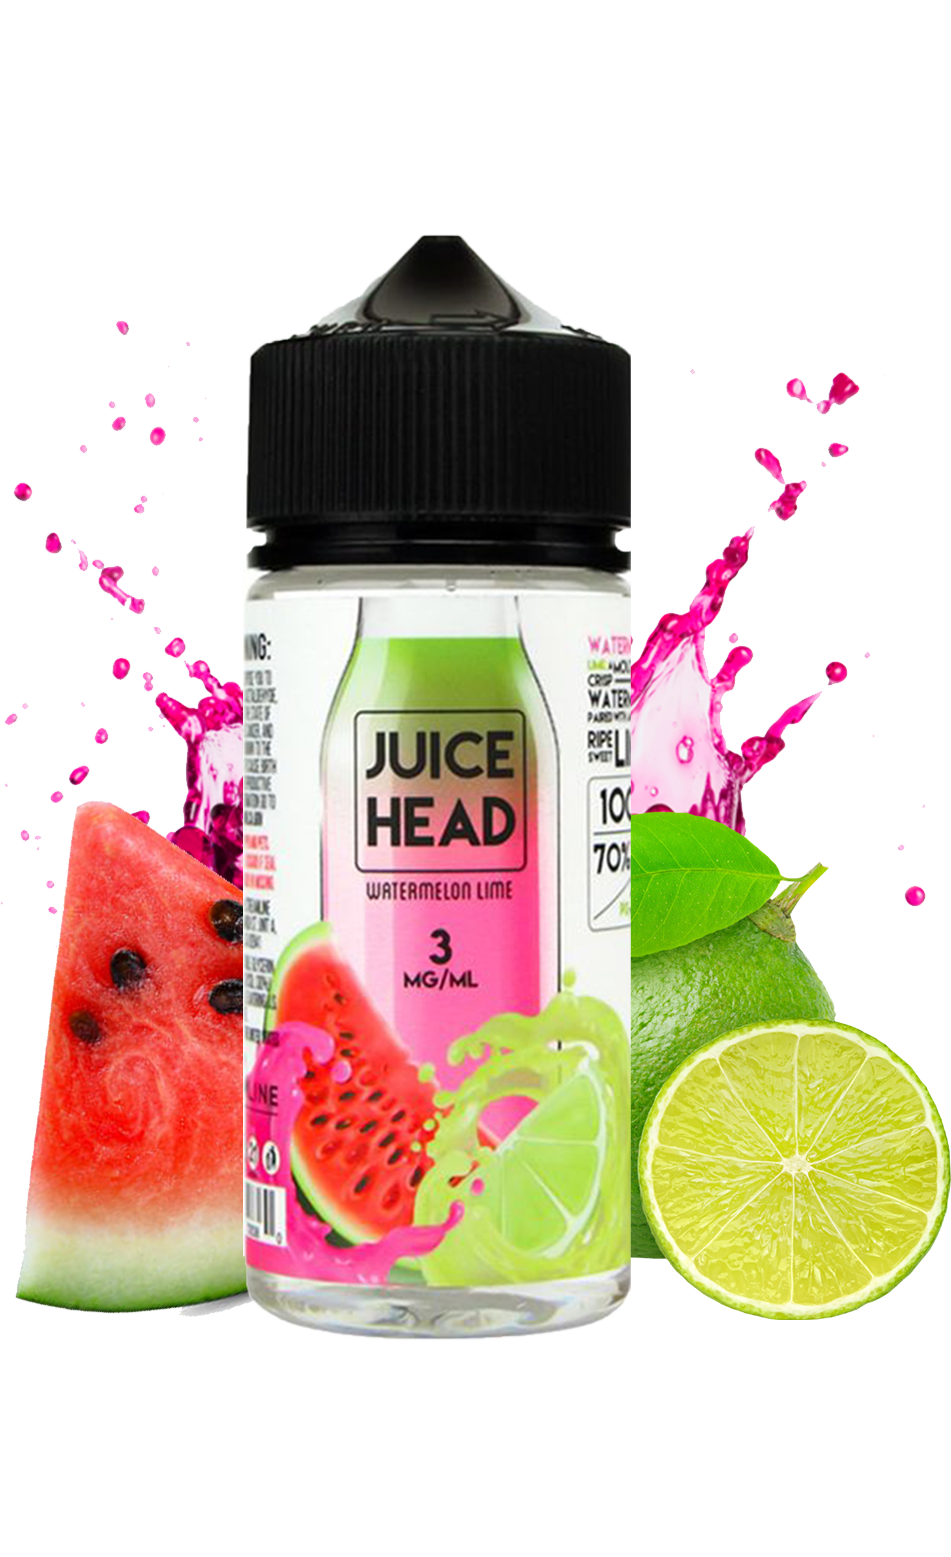 Juice Head Watermelon Lime 100ML Vape Juice plastic bottle surrounded by sliced watermelon and lime.